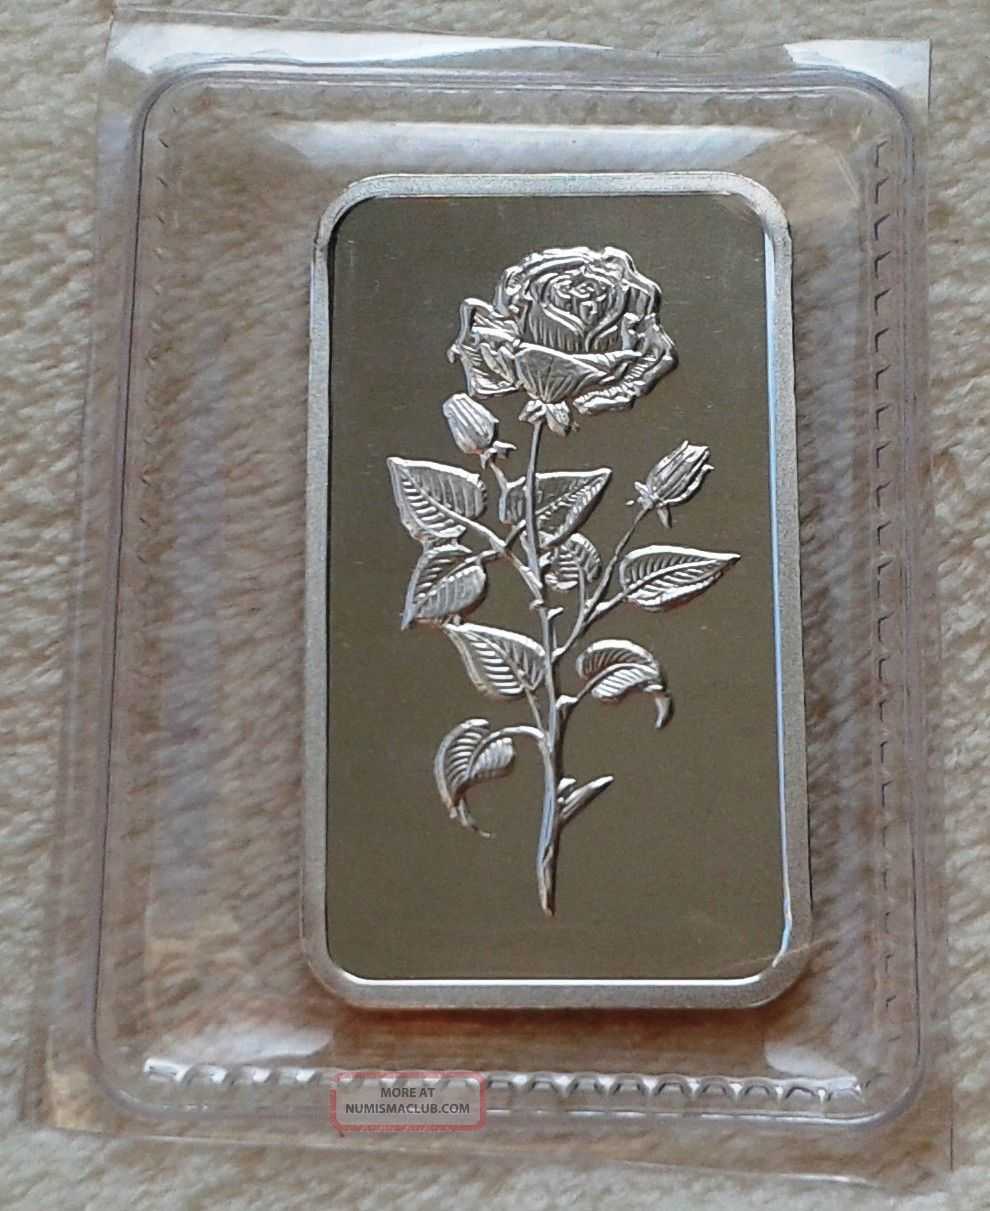 1 Oz Emirates Gold 999 0 Fine Silver Bar Quot Rose Of Dubai